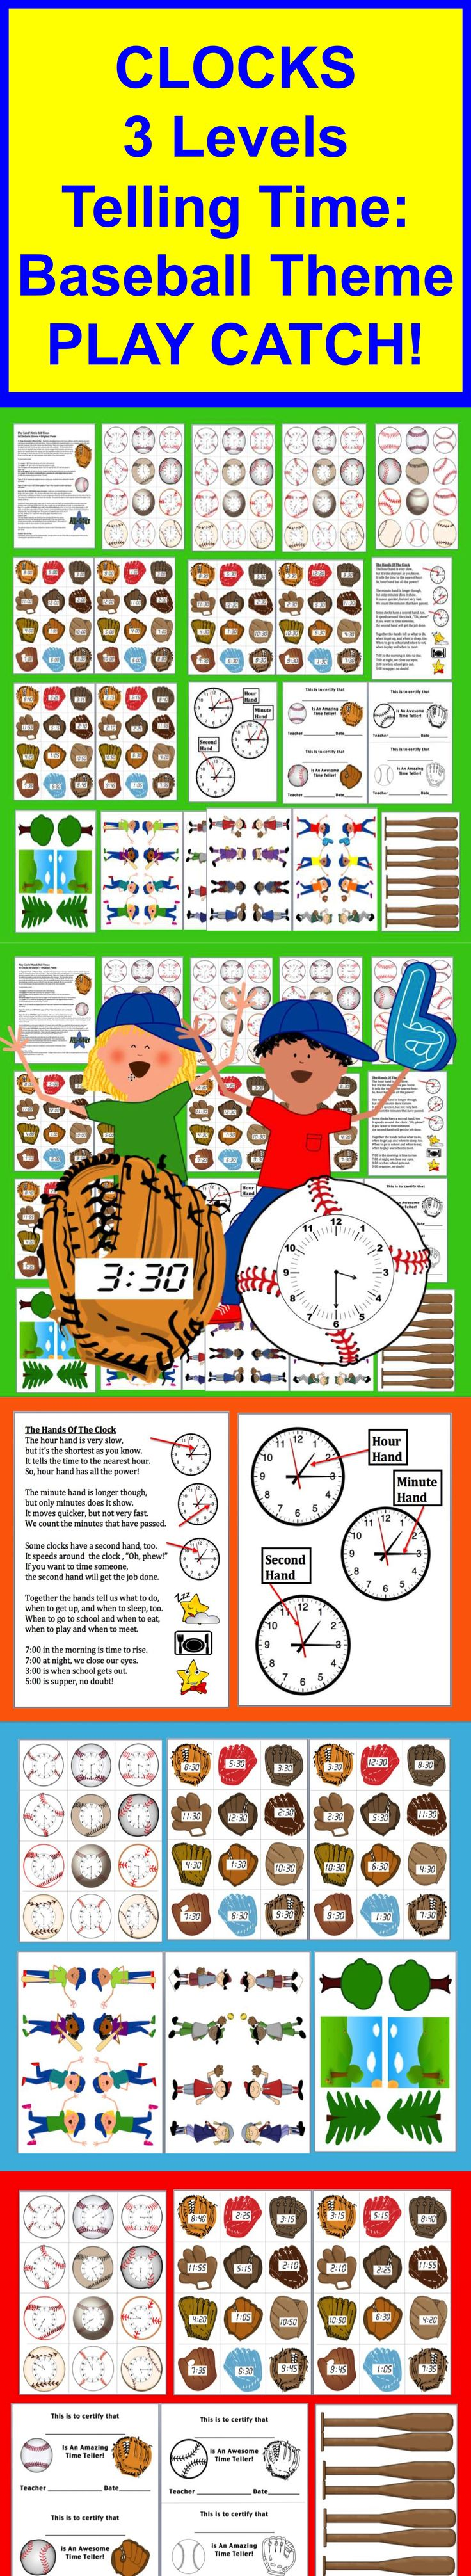 $ Telling Time Clocks Math Centers: Play Catch at 3 Levels  ★ NEWLY REVISED WITH NEW CLIP ART!  ★Match Baseball Clocks to Digital Times in Gloves  ★Also contains an Original Telling Time Poem  Common Core State Standards:  Tell and write time.